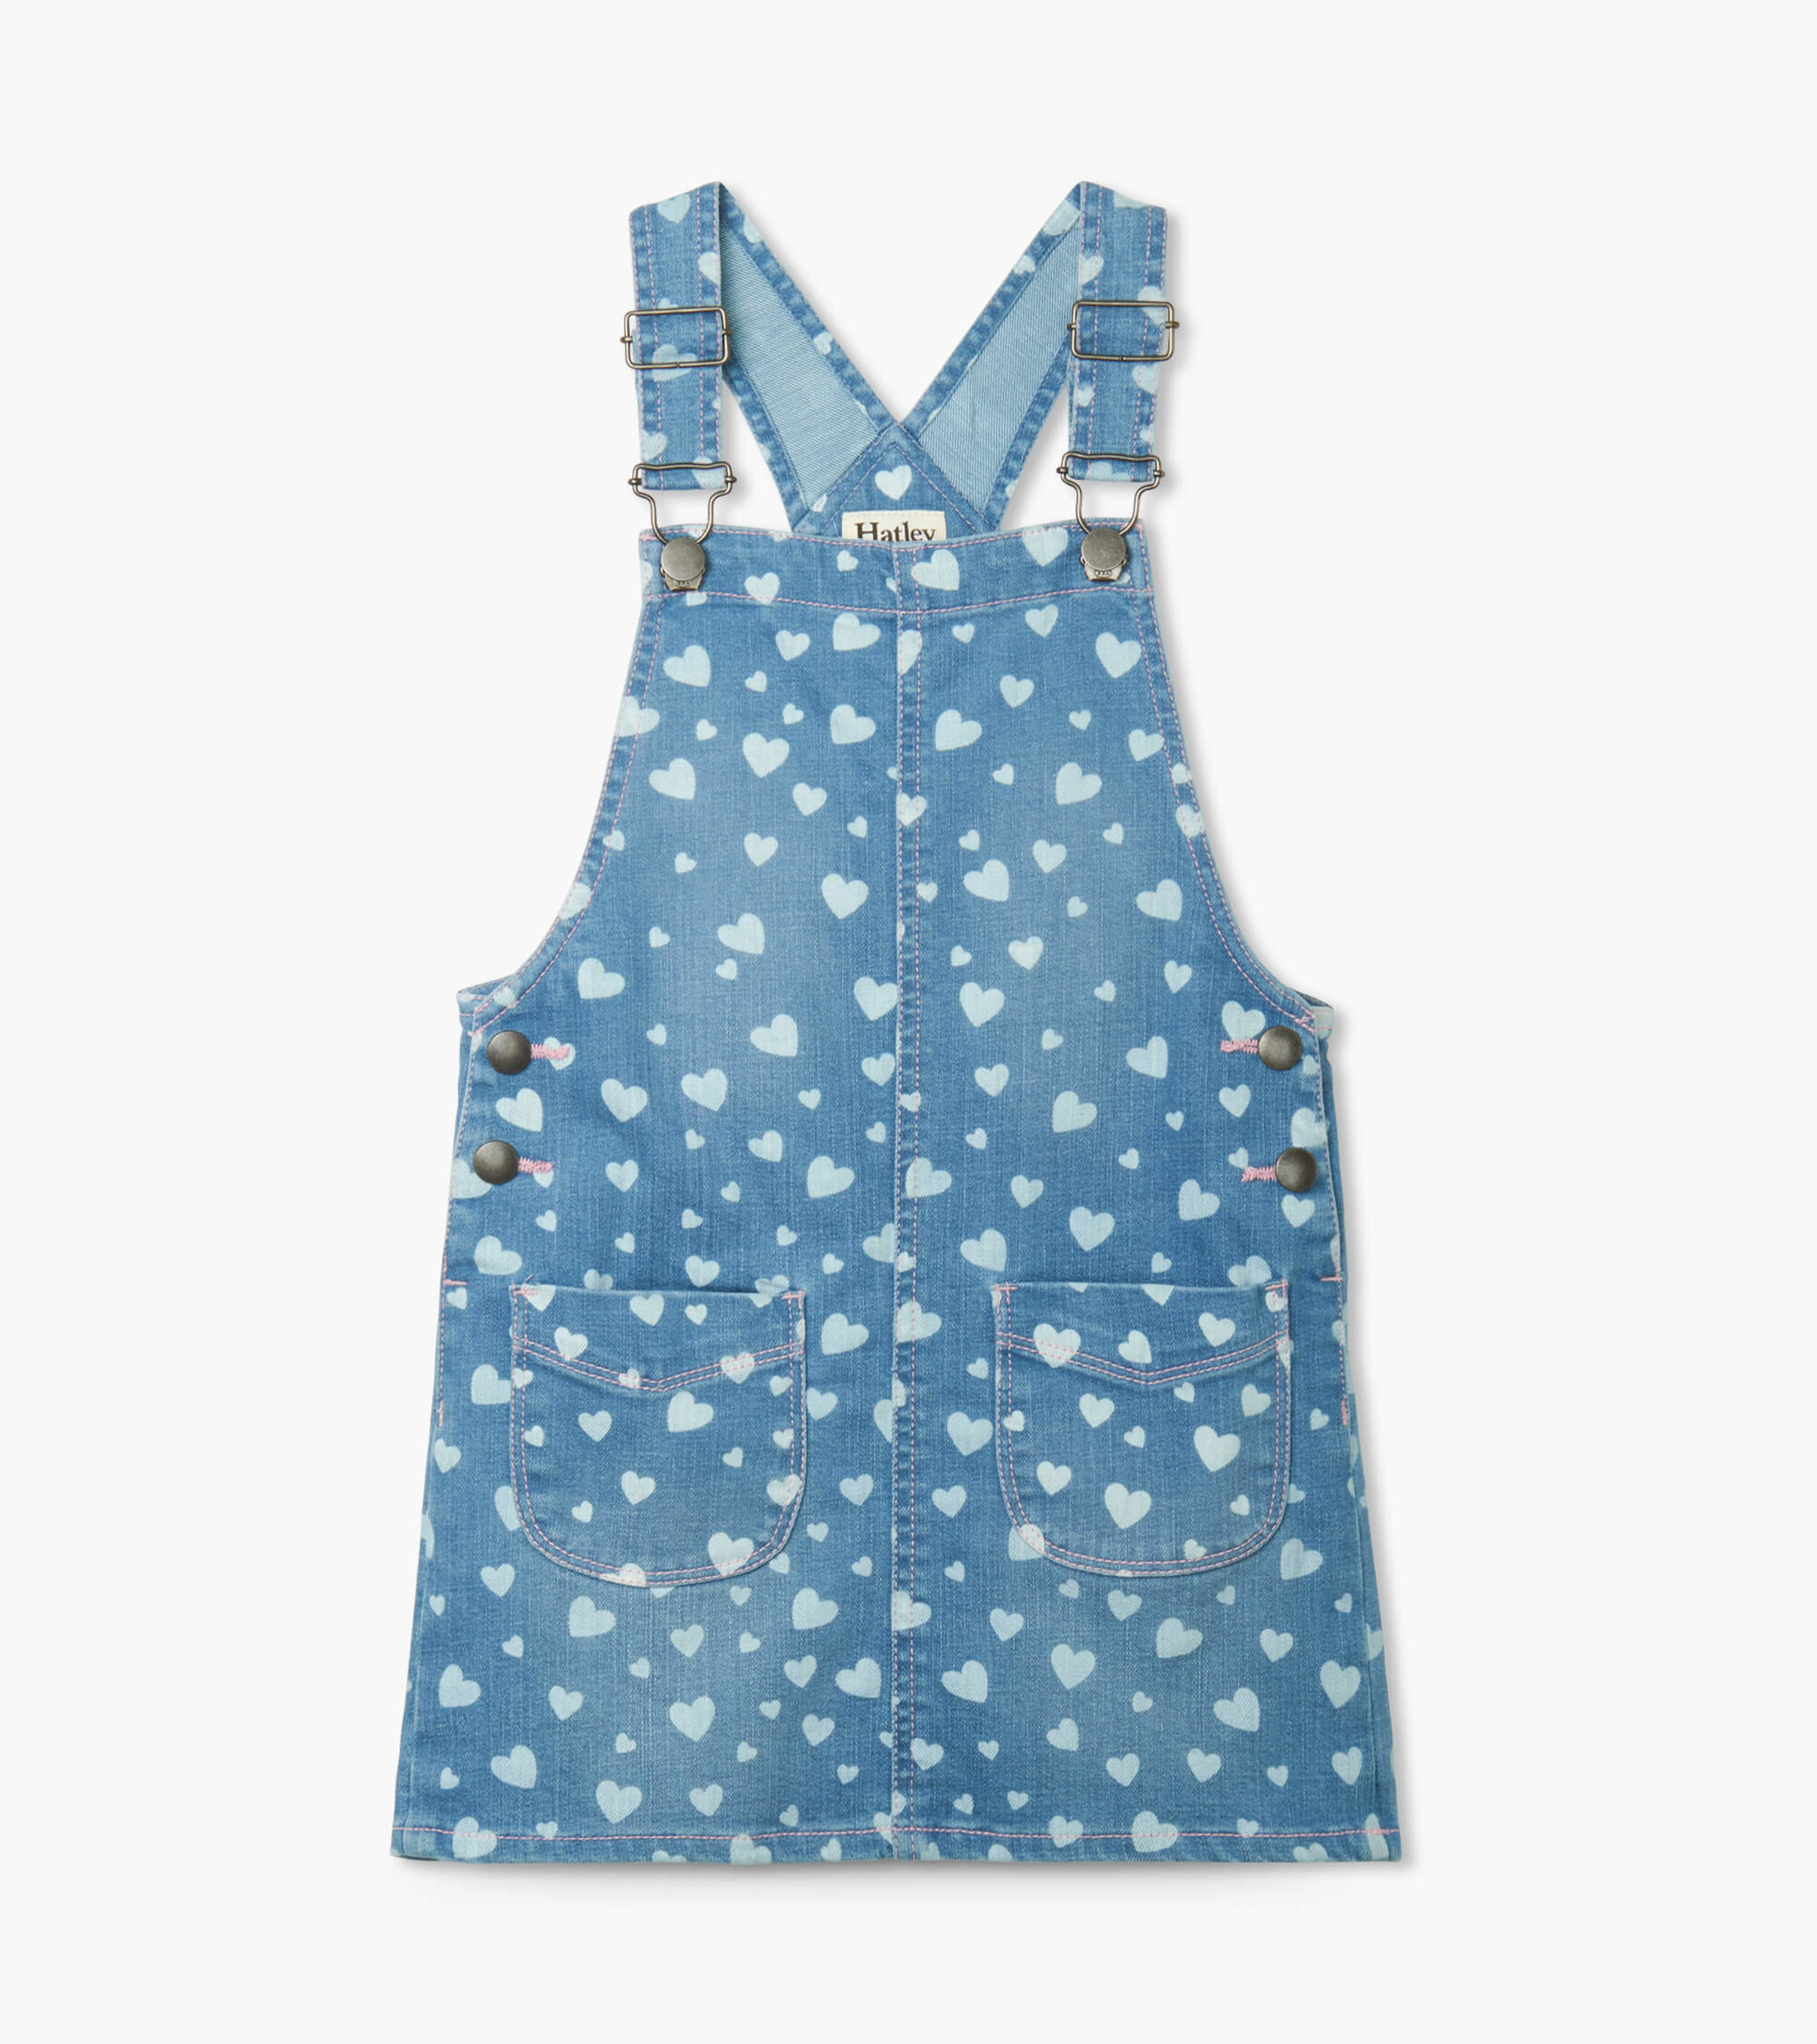 SALE £27.20 Hatley Heart Cluster Denim Pinafore (was £34.00)